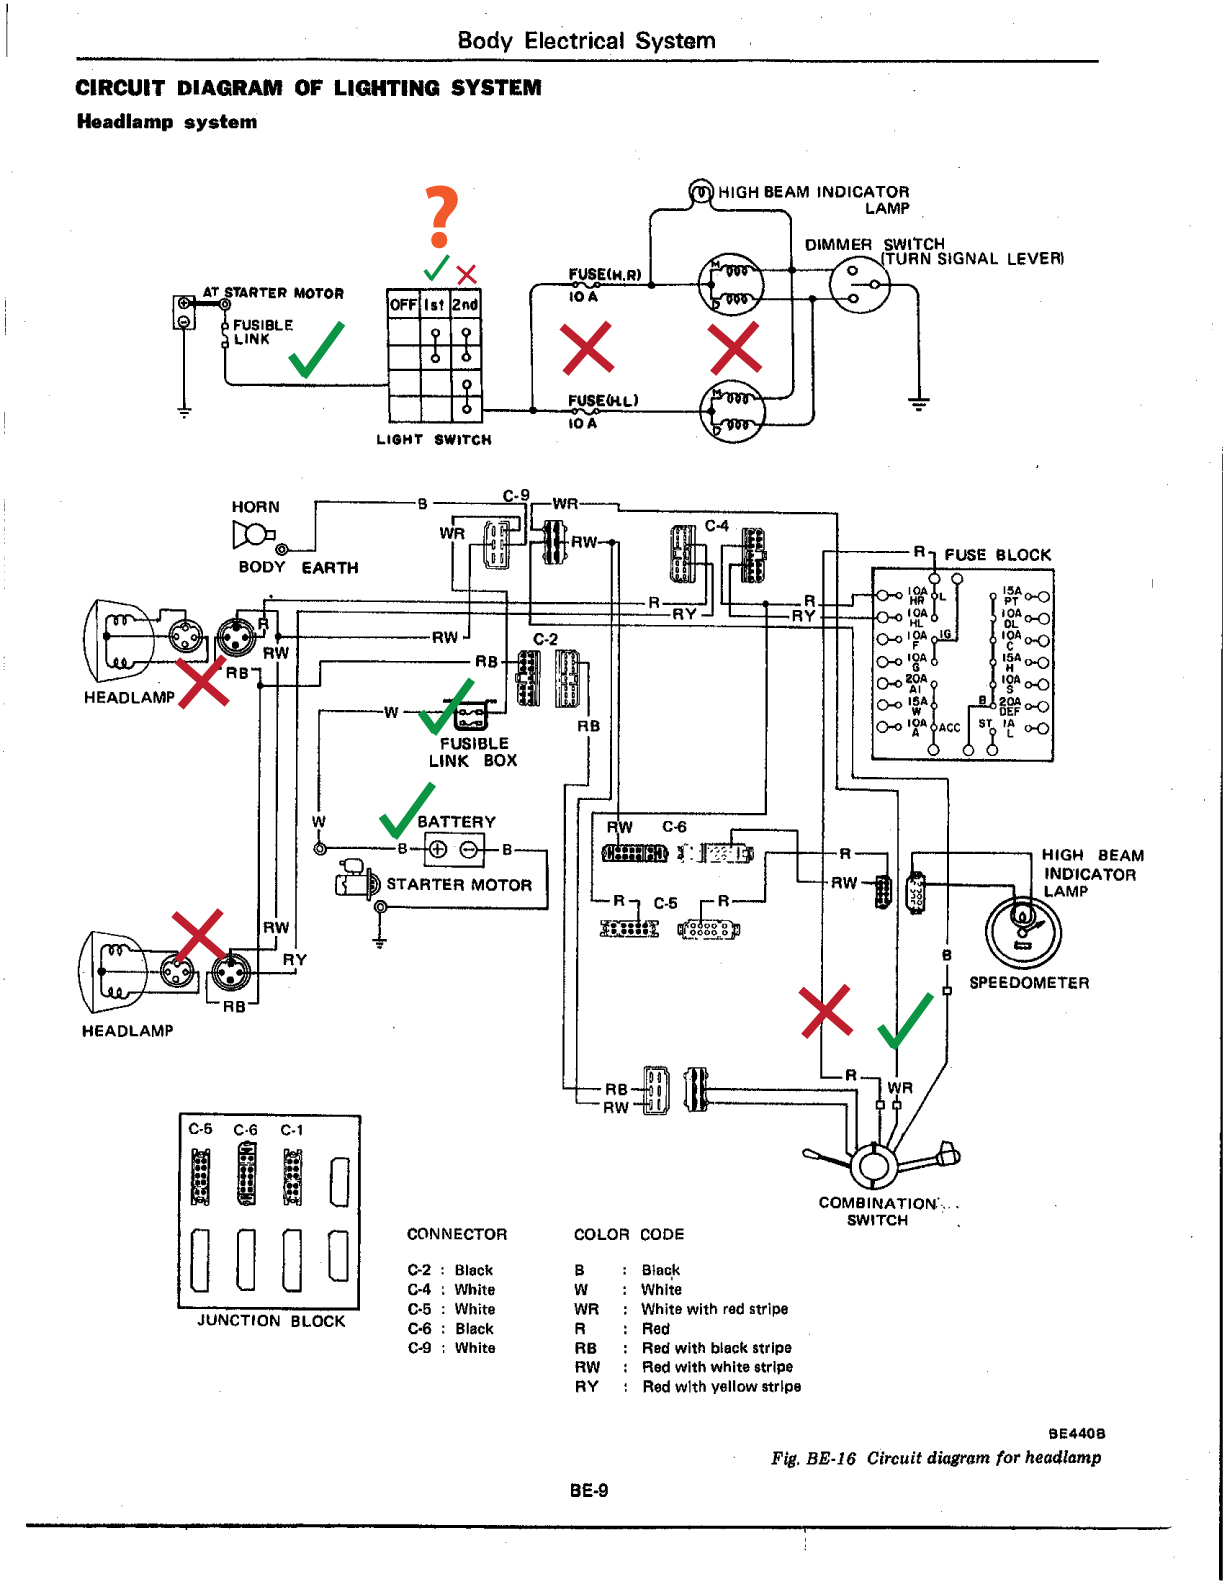 daily datsun 280z fsm be 9 goodbad electrics the daily datsun 1976 280z wiring diagram at bayanpartner.co